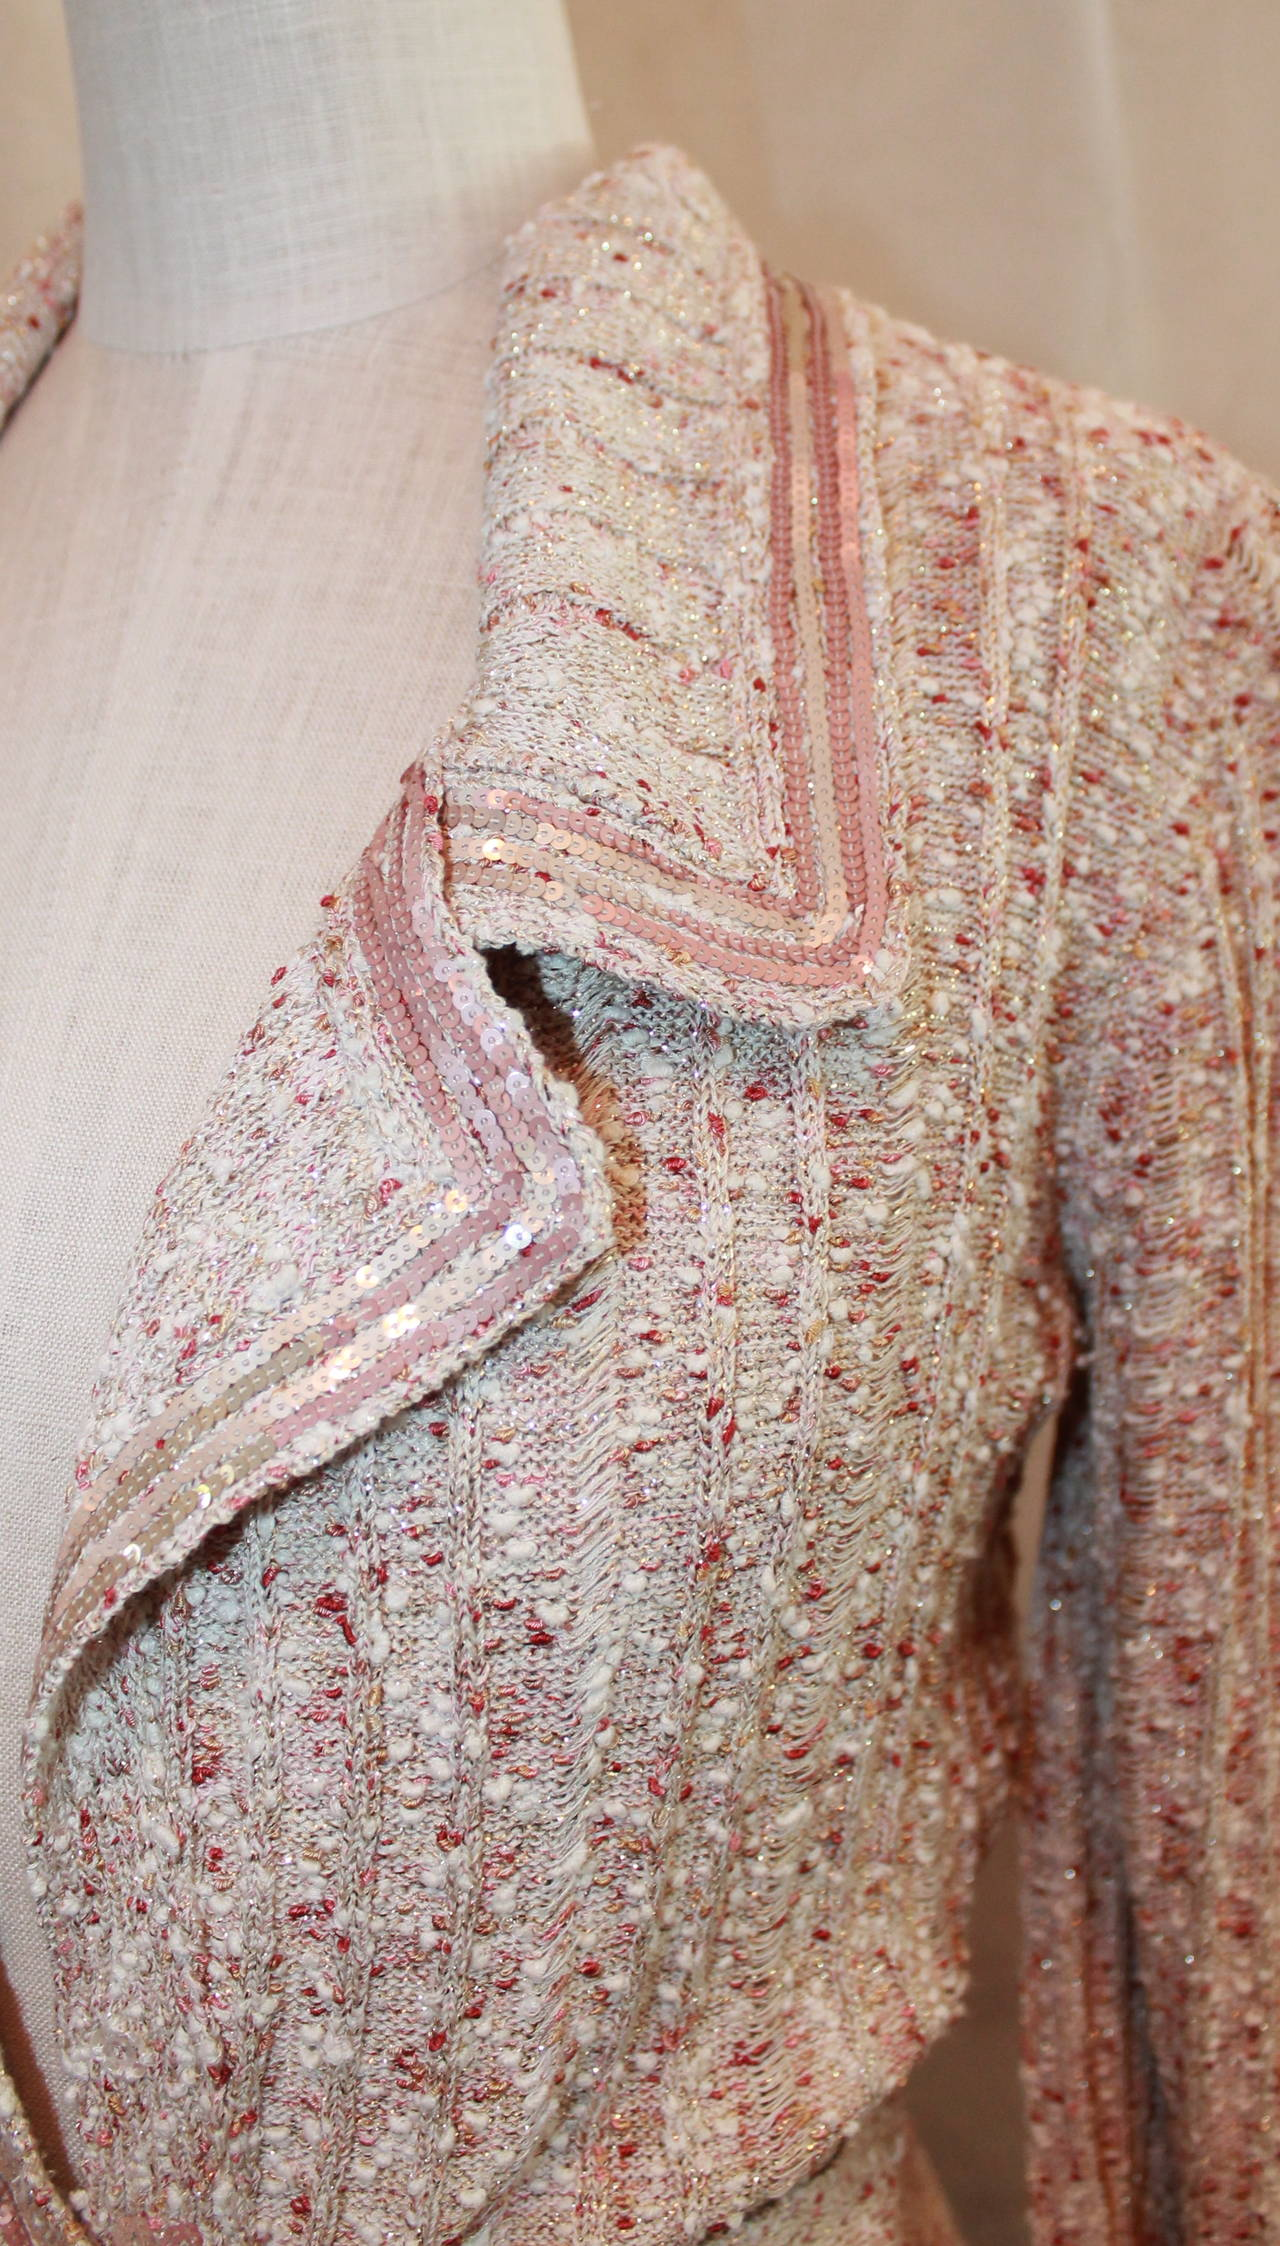 Chanel Beige Knit Jacket with Sequins - Size 40 - Circa 2006 3